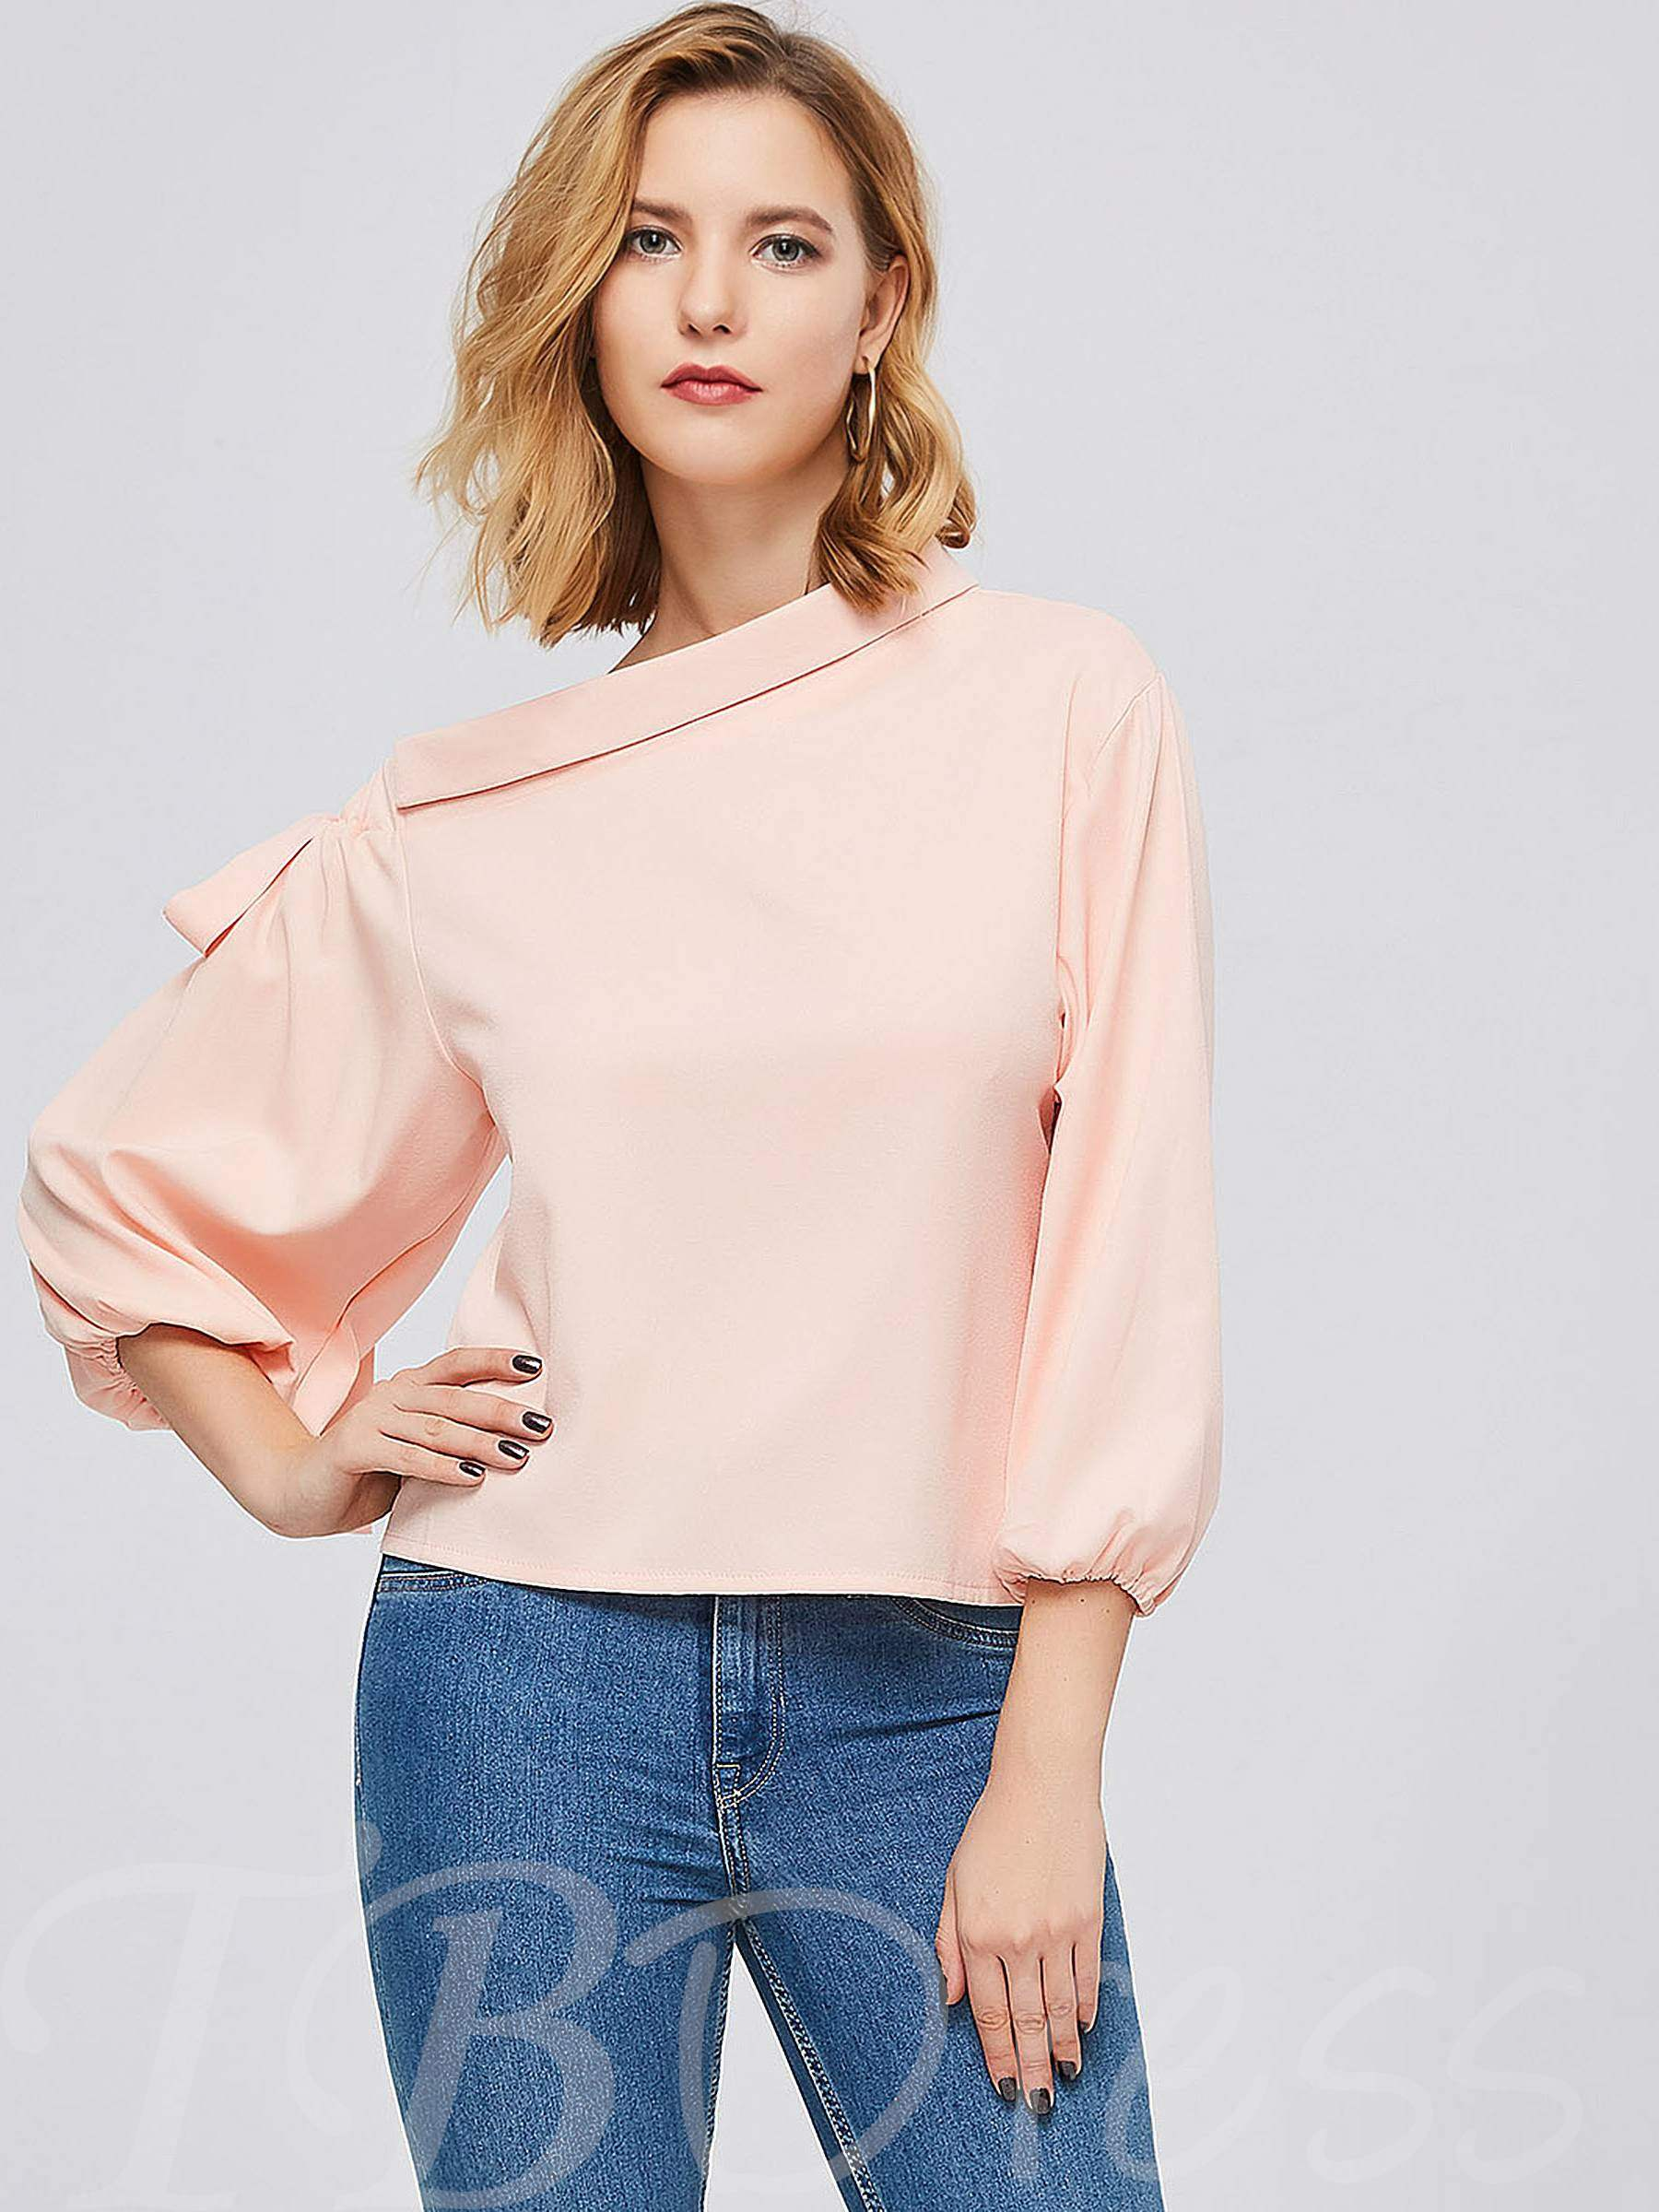 Buy One Shoulder Off Candy Color Women's Blouse, Spring,Summer,Fall, 13379377 for $10.66 in TBDress store